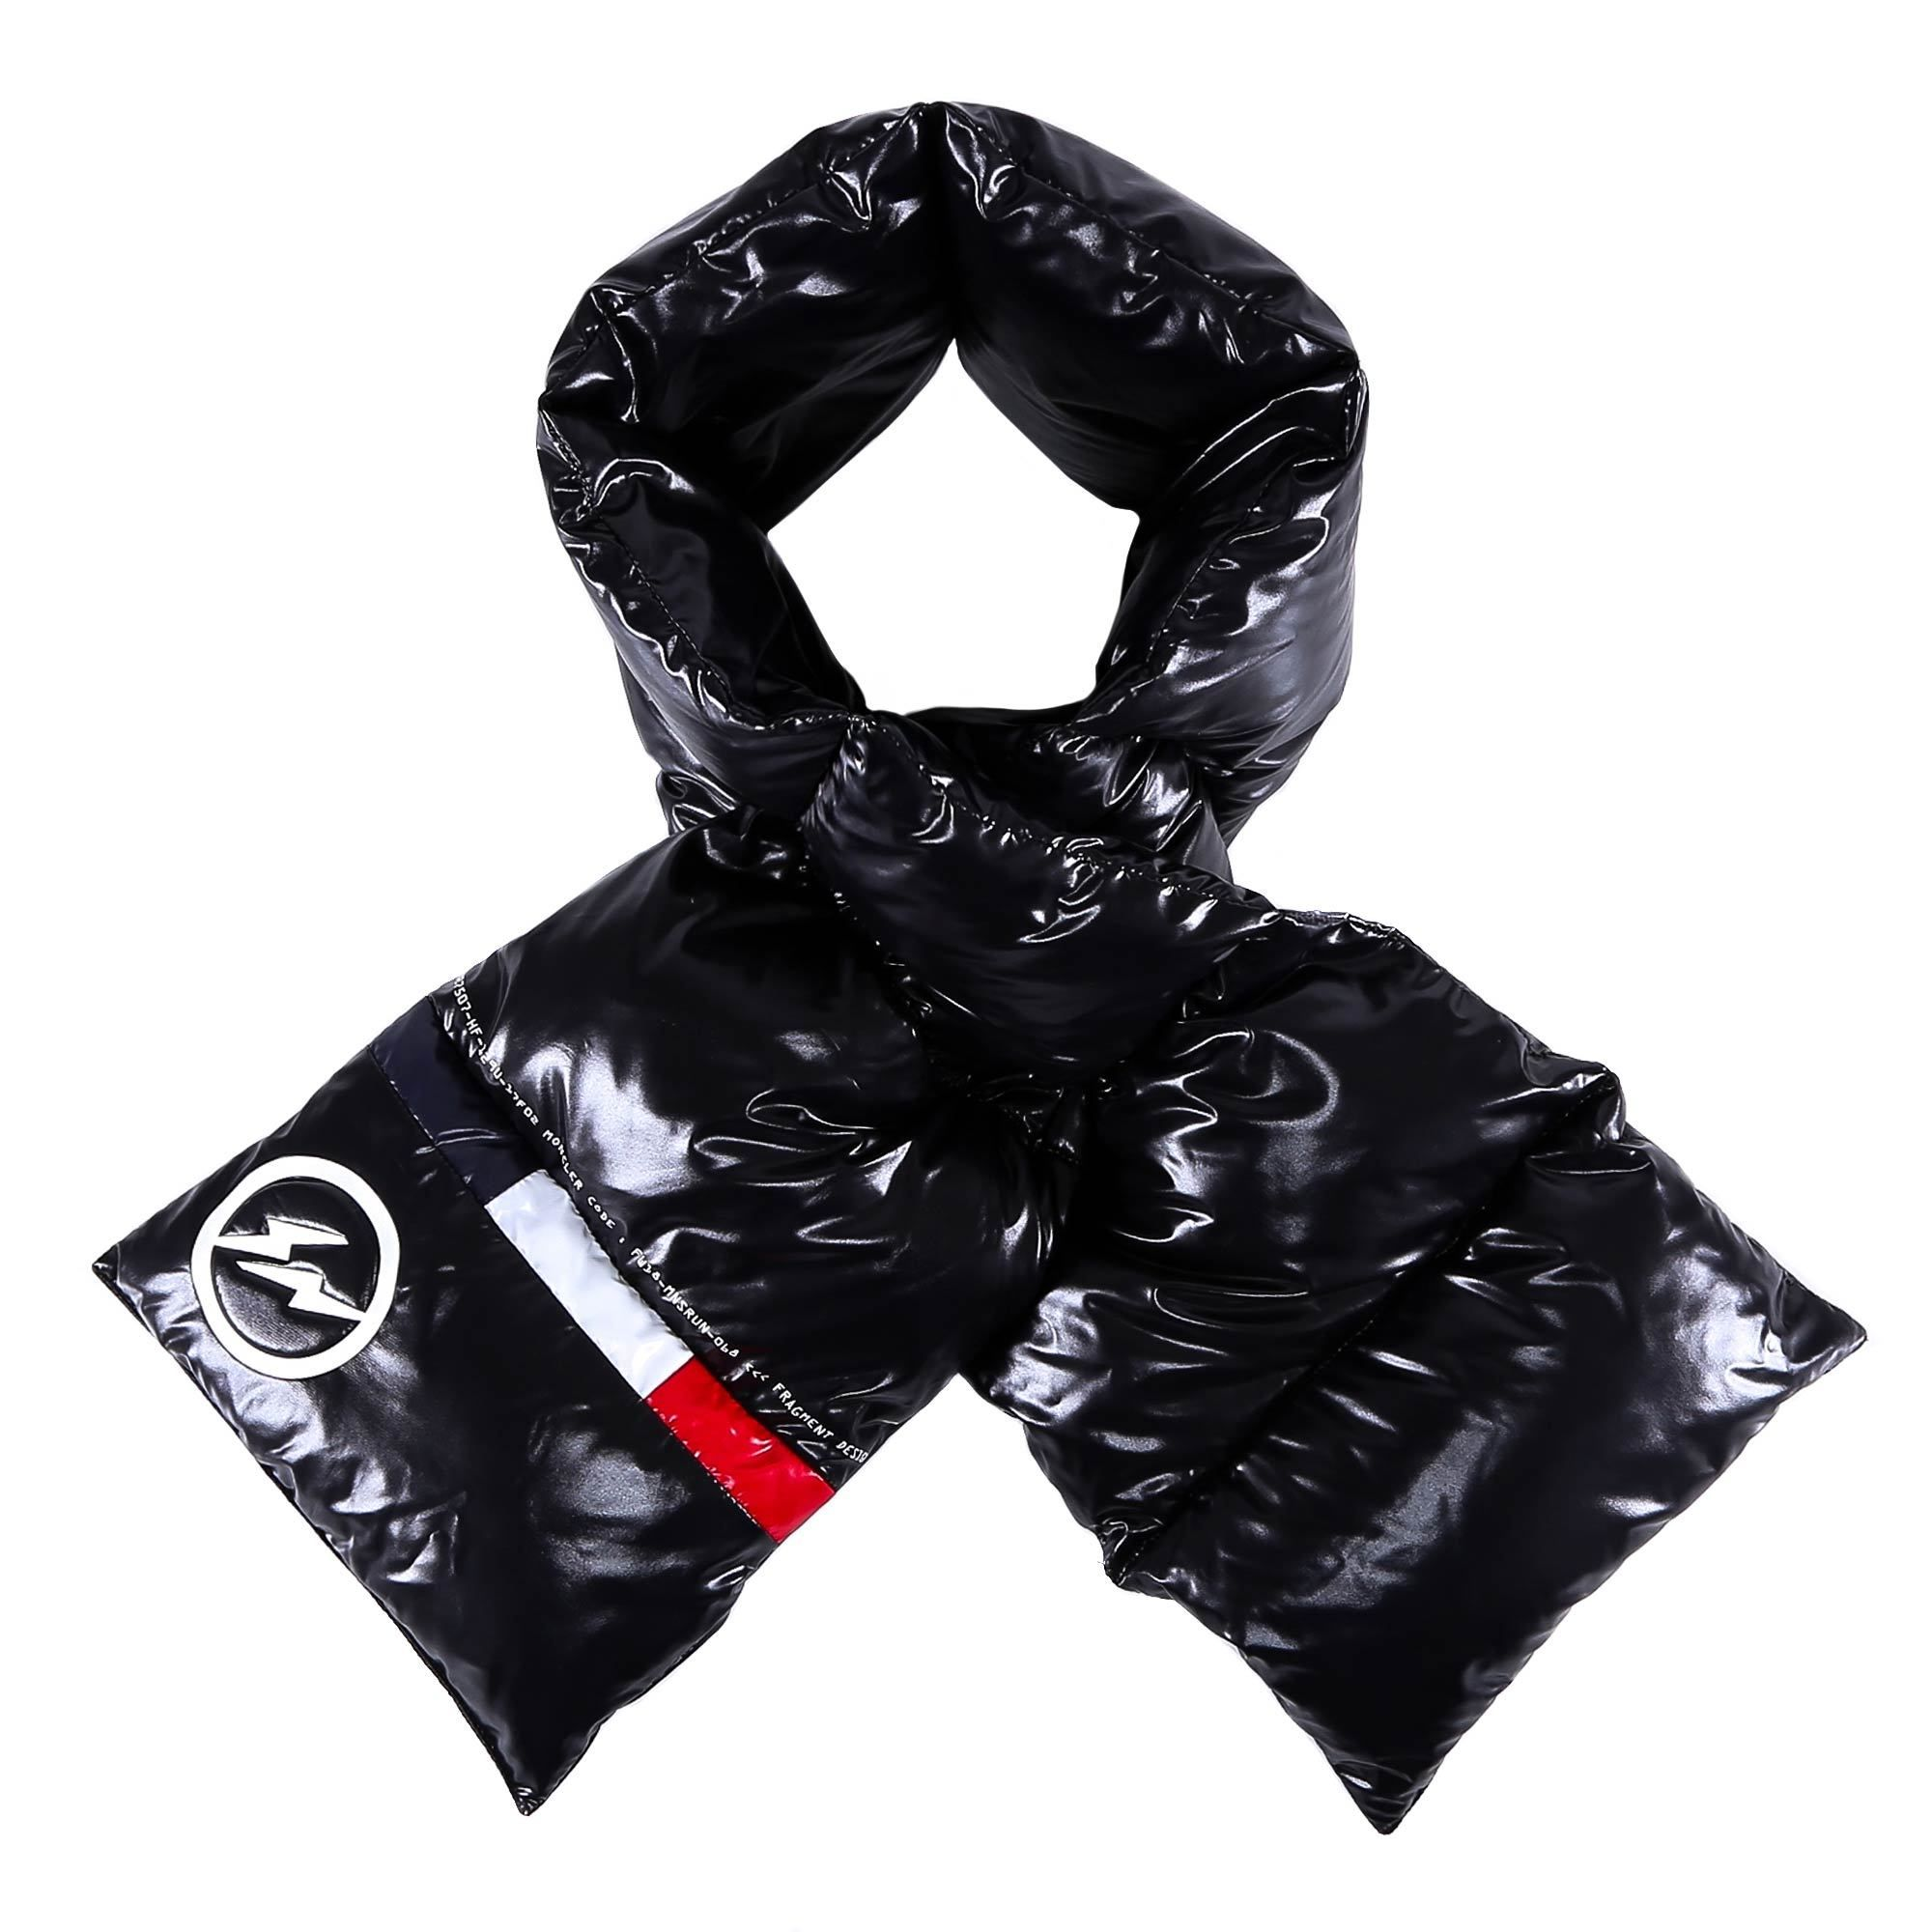 c04a59e30 MONCLER MONCLER FRAGMENT PADDED SCARF. #moncler | Moncler in 2019 ...